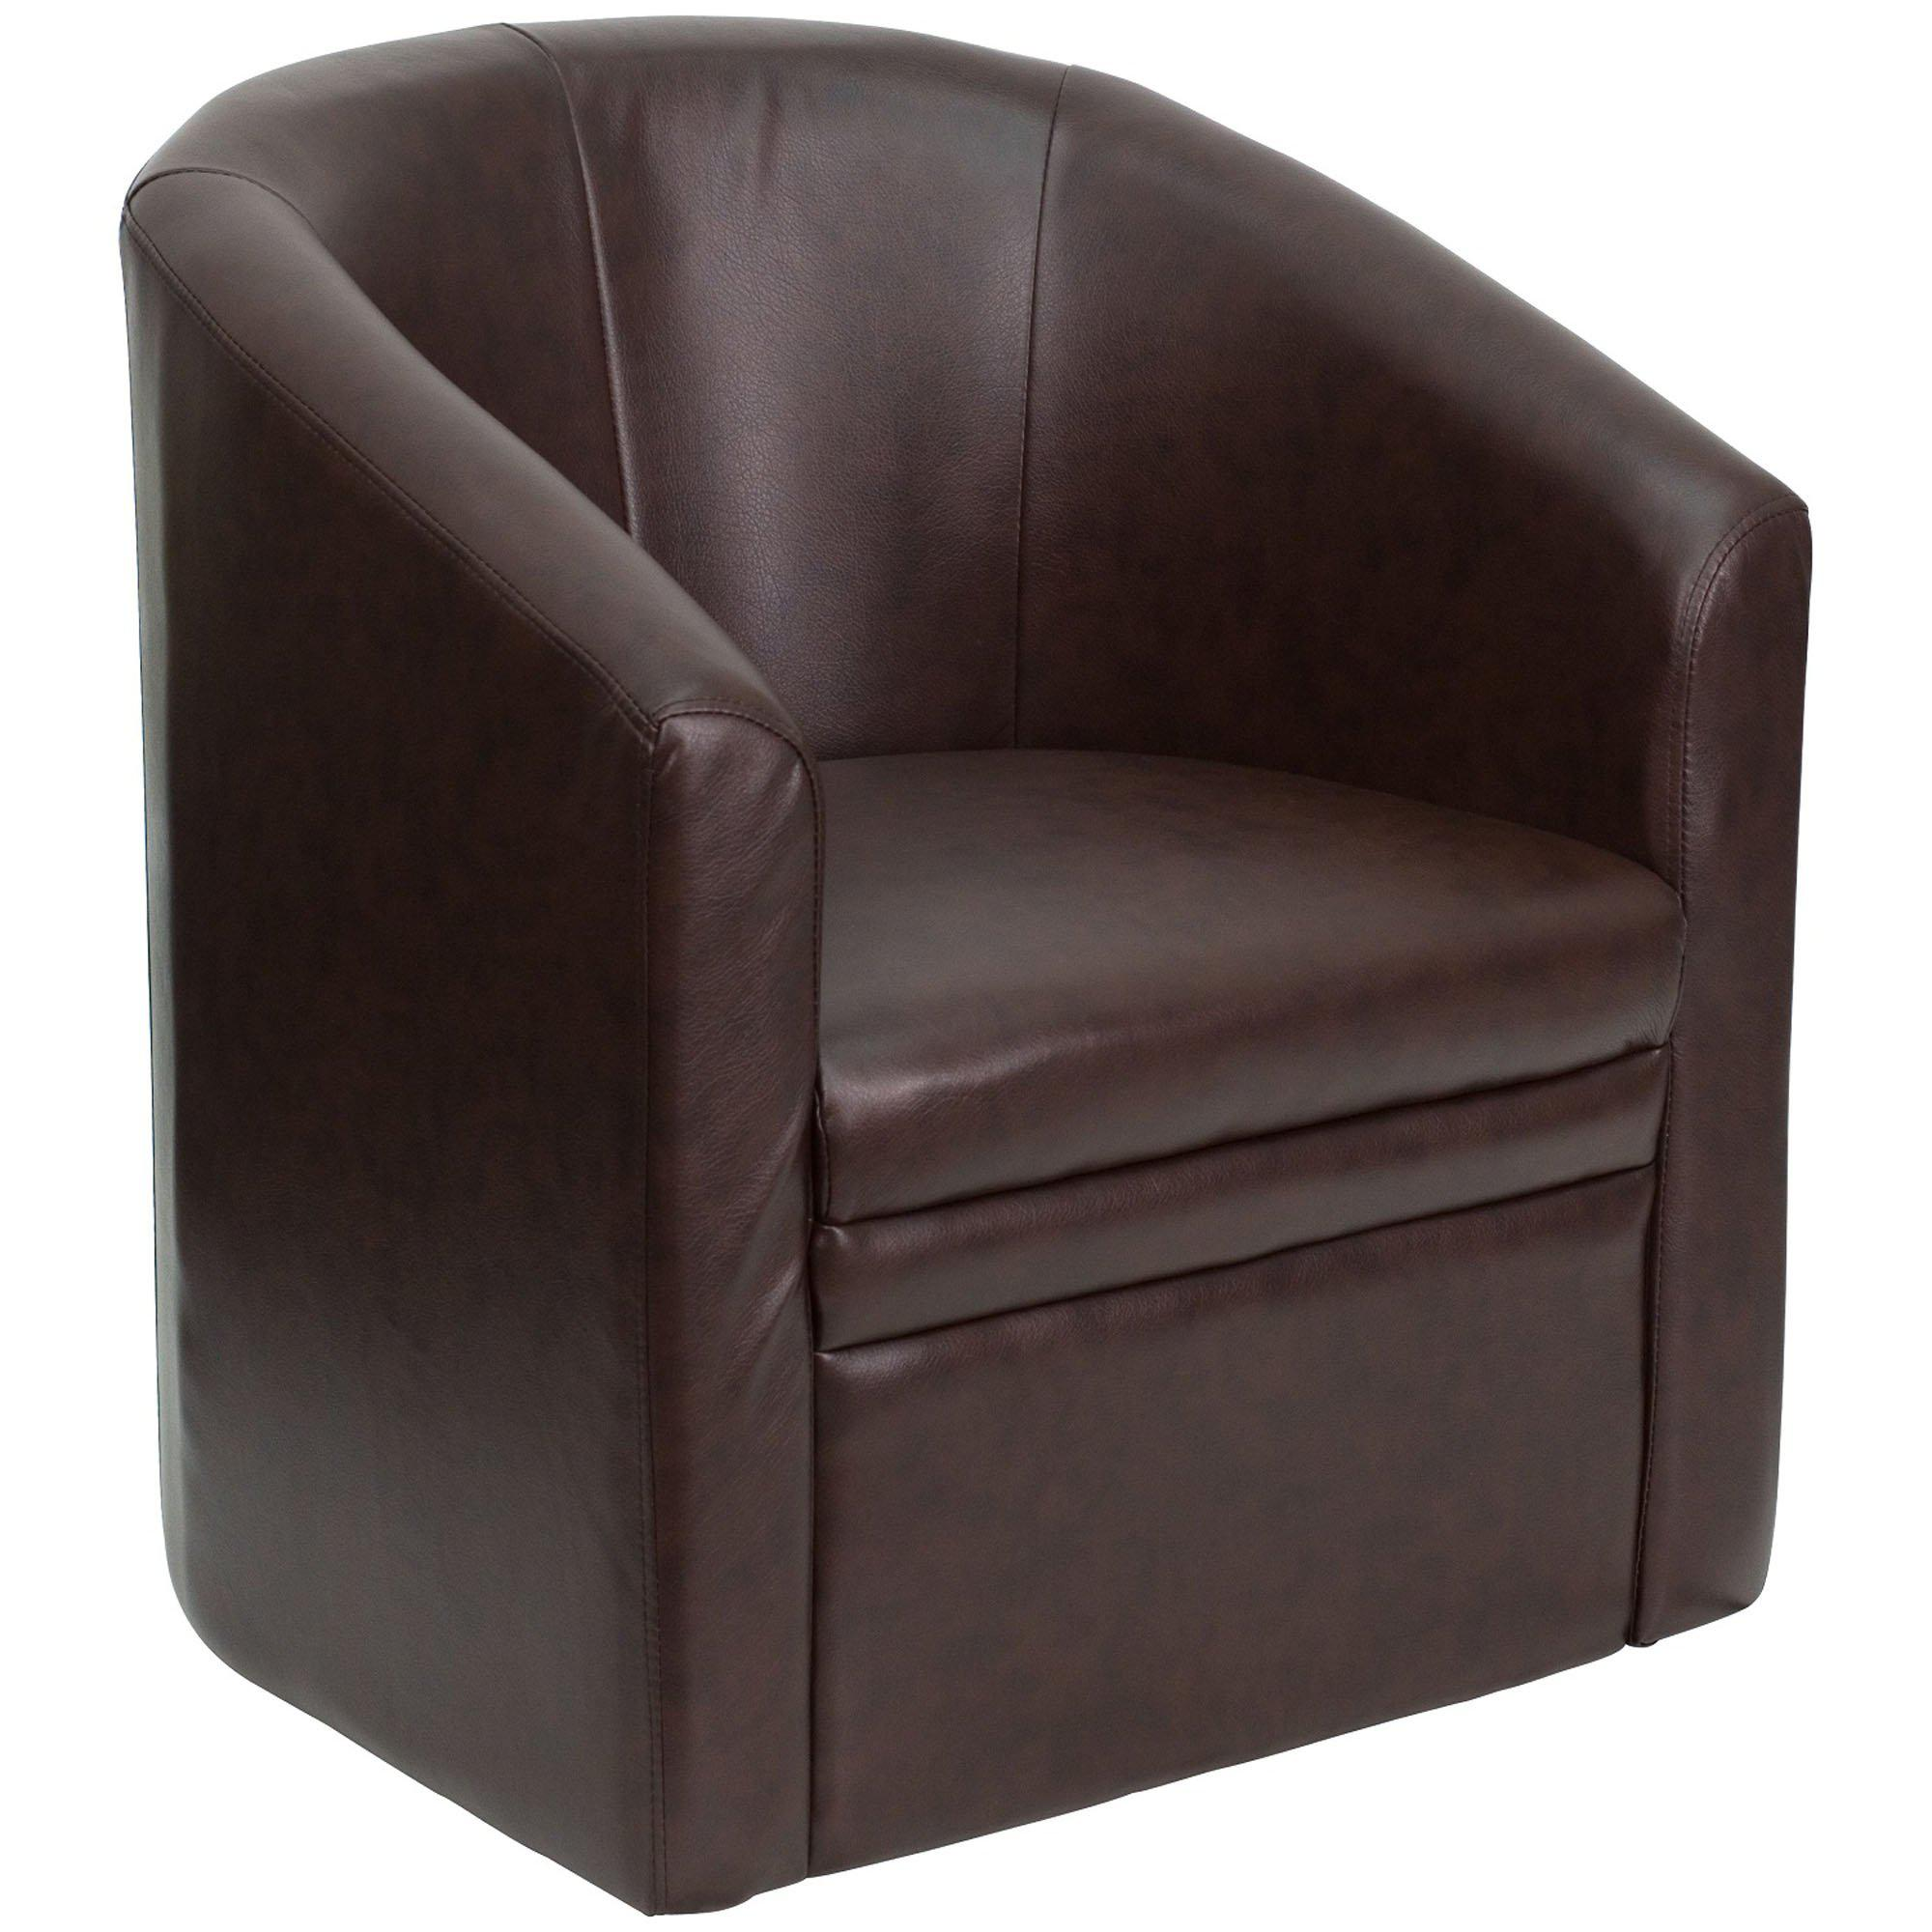 Nextgen Barrel-Shaped Guest Chair with Full Front Panel, Brown LeatherSoft  Upholstery